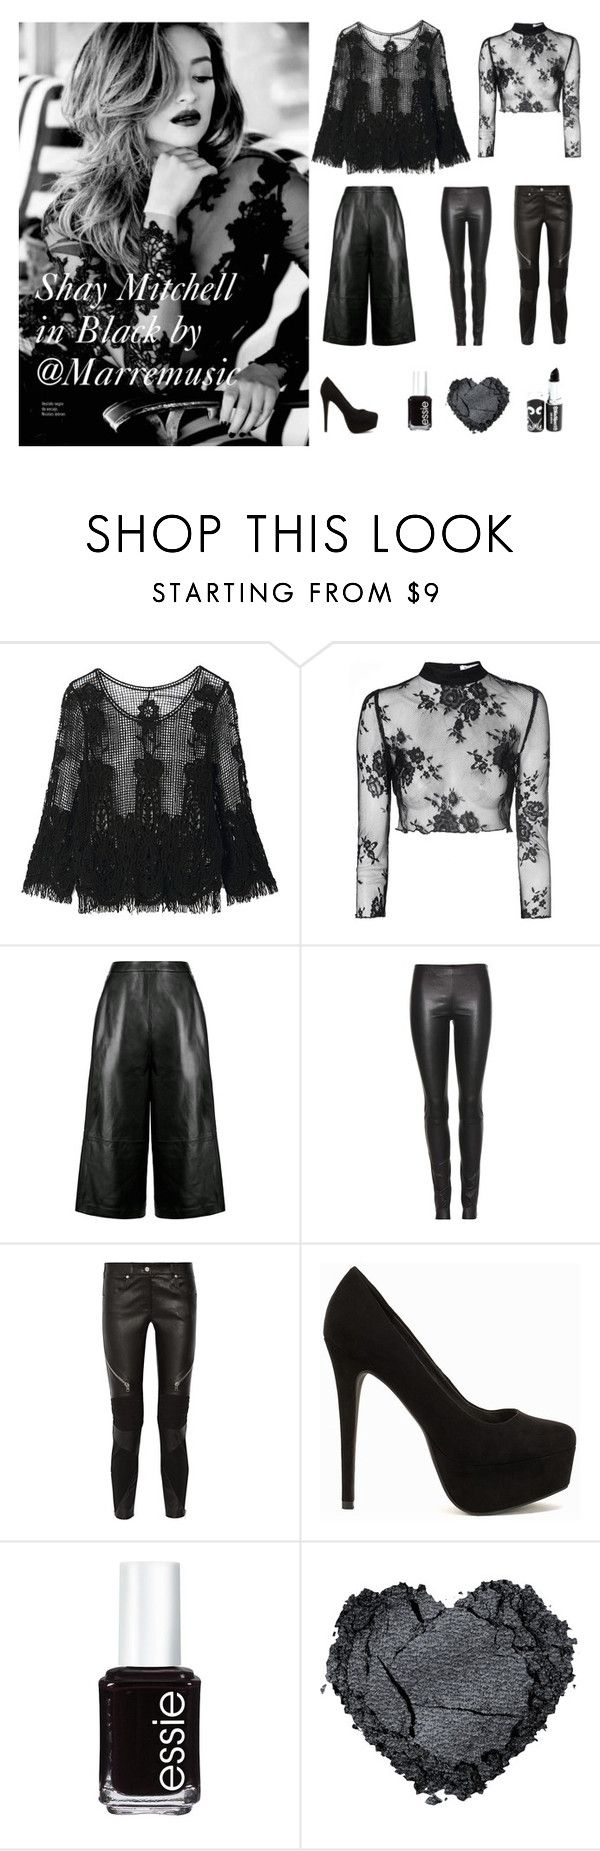 """Shay Mitchell in Black by @Marremusic"" by marremusic on Polyvore featuring Glamorous, Whistles, The Row, Givenchy, Nly Shoes and Essie"